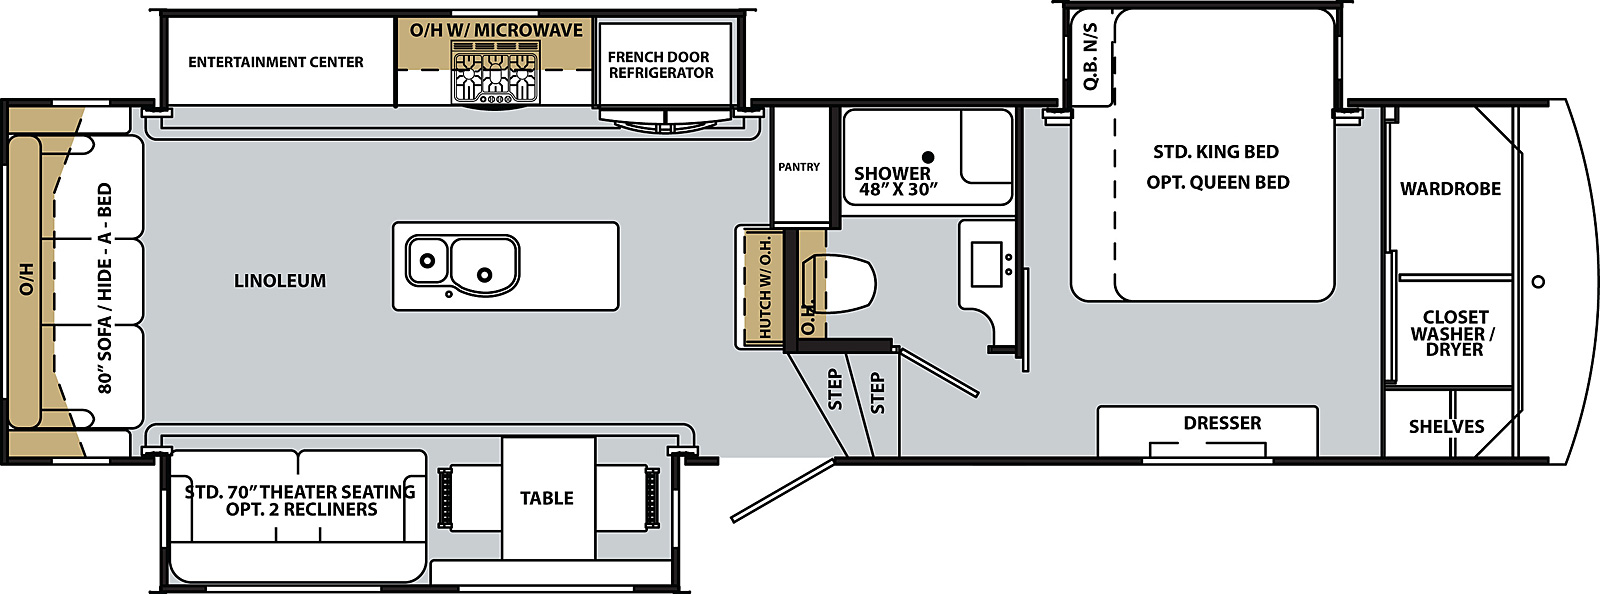 [DIAGRAM_5LK]  Cardinal Luxury 3350RLX | Forest River RV - Manufacturer of Travel Trailers  - Fifth Wheels - Tent Campers - Motorhomes | Forest River 5th Wheel Wiring Diagram |  | Forest River